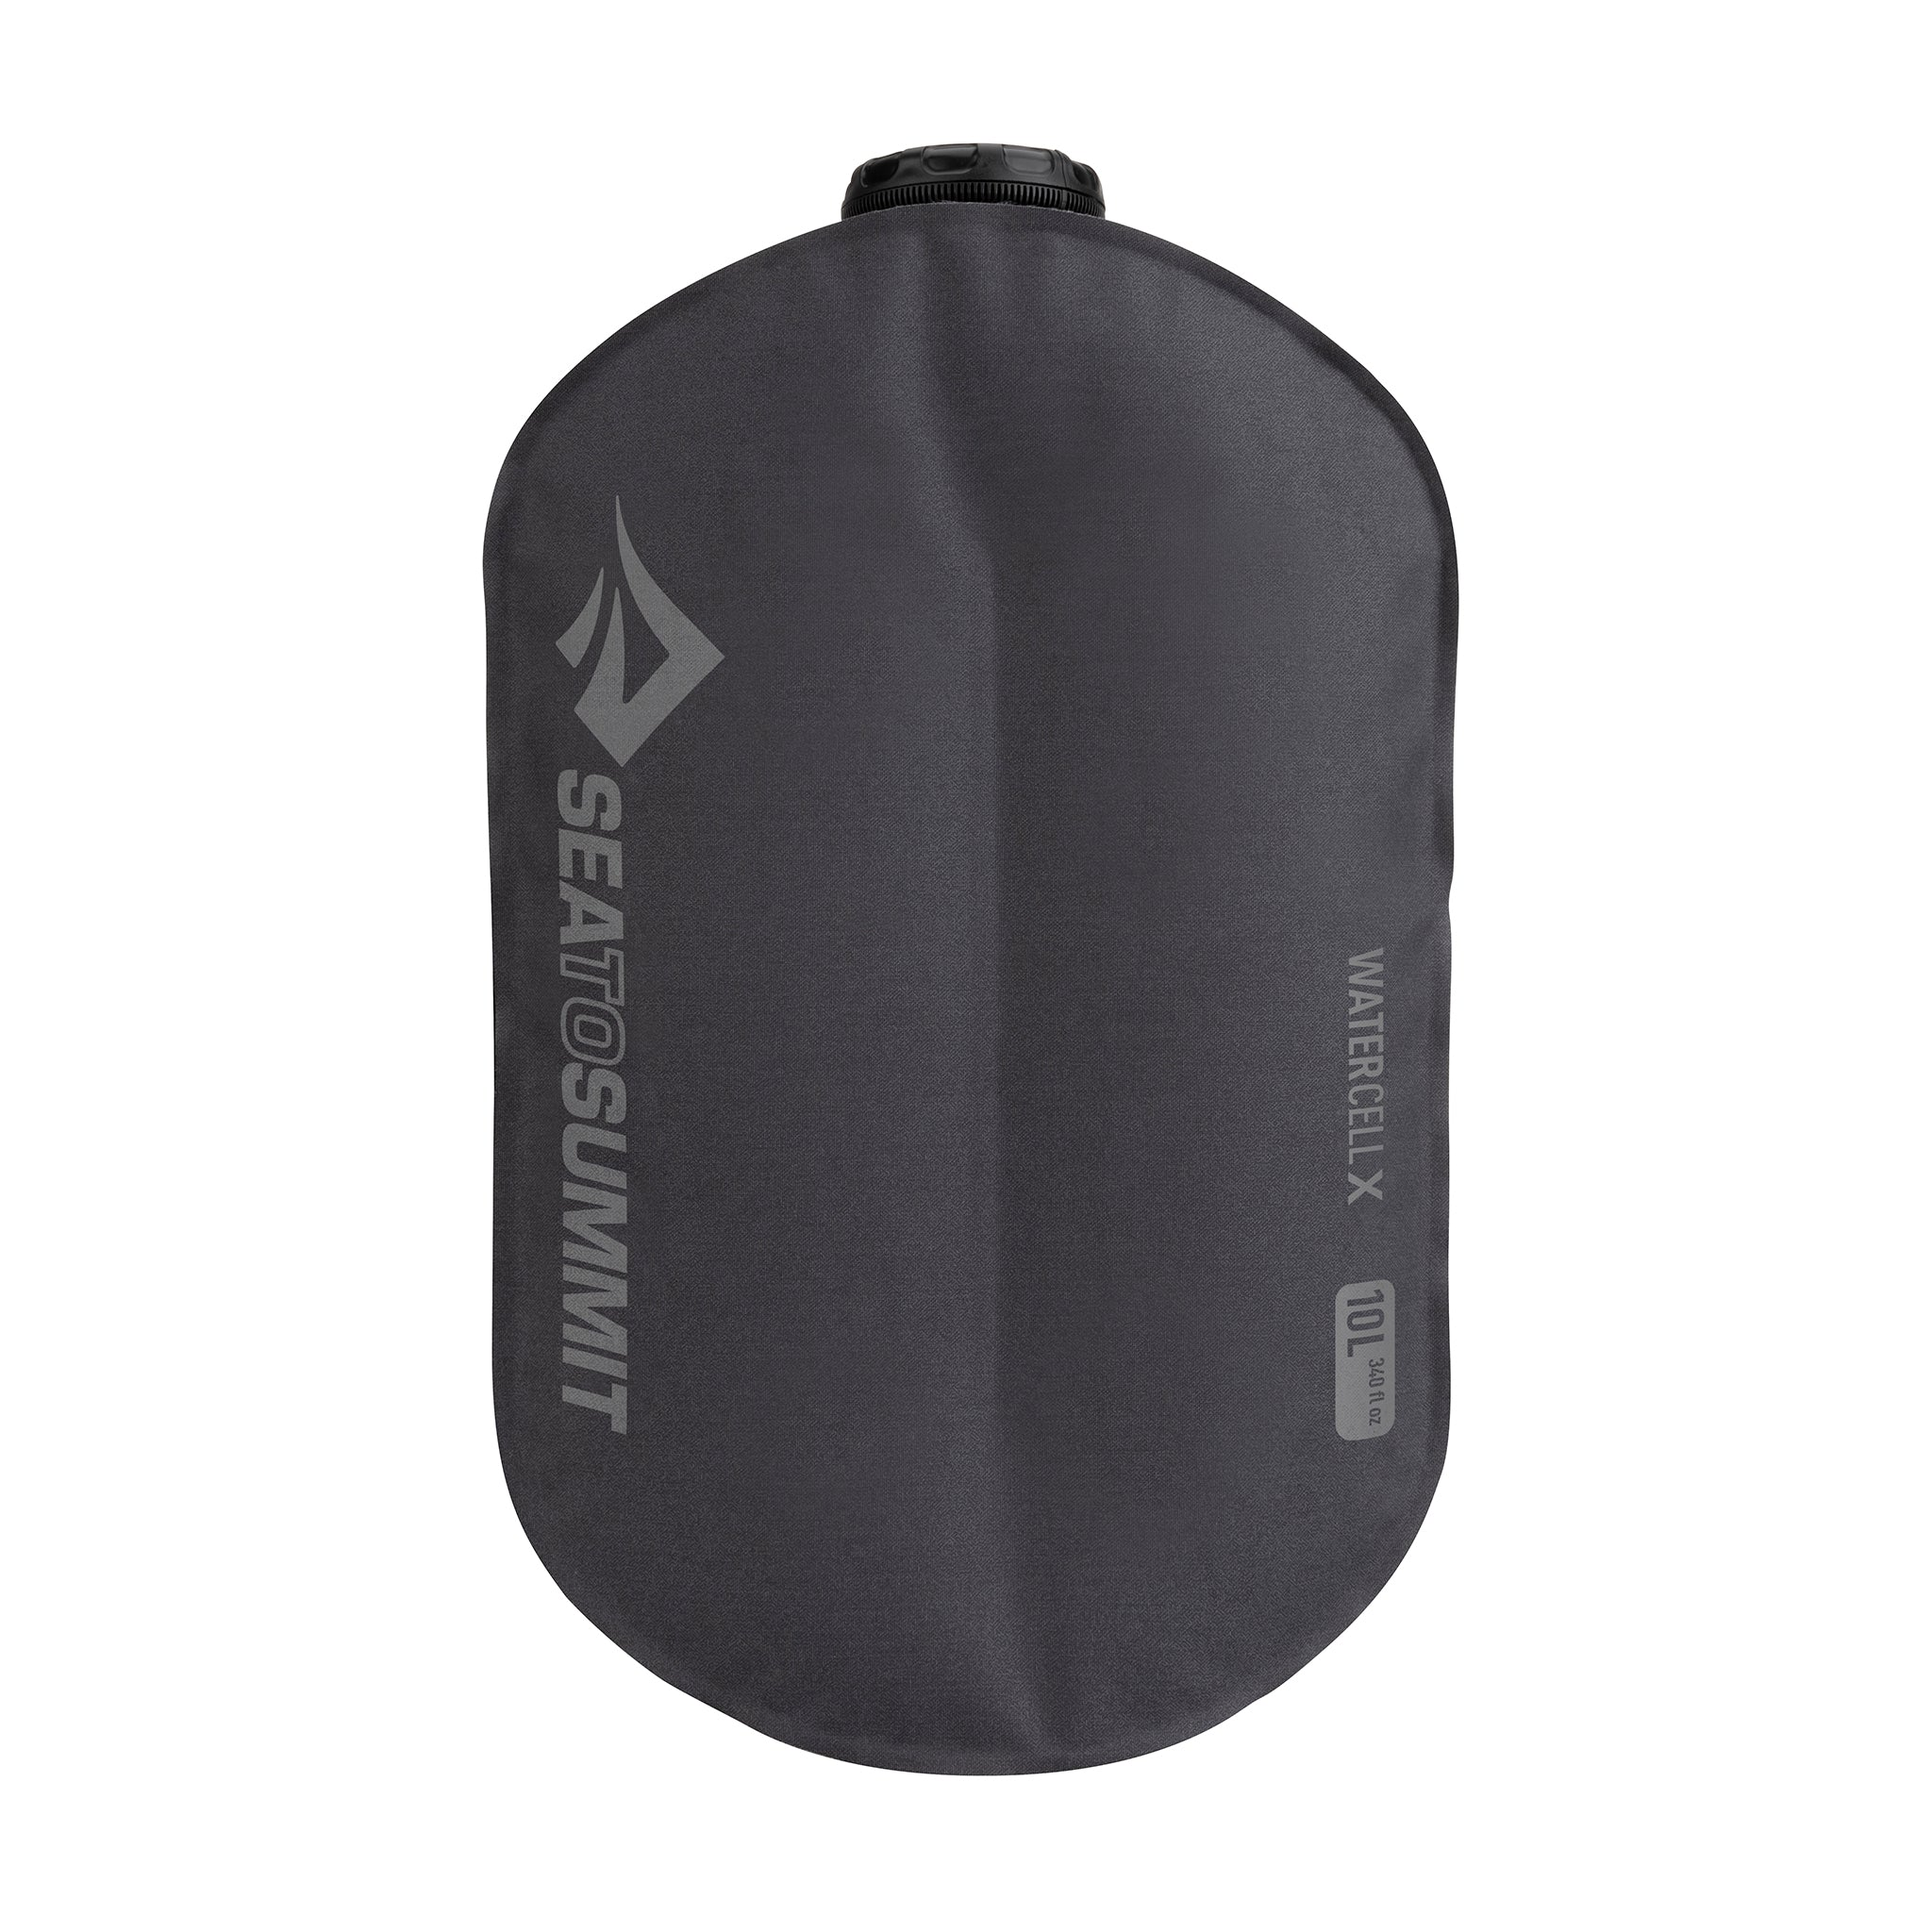 Wartercell X _ durable reservoir water bag _ 10L